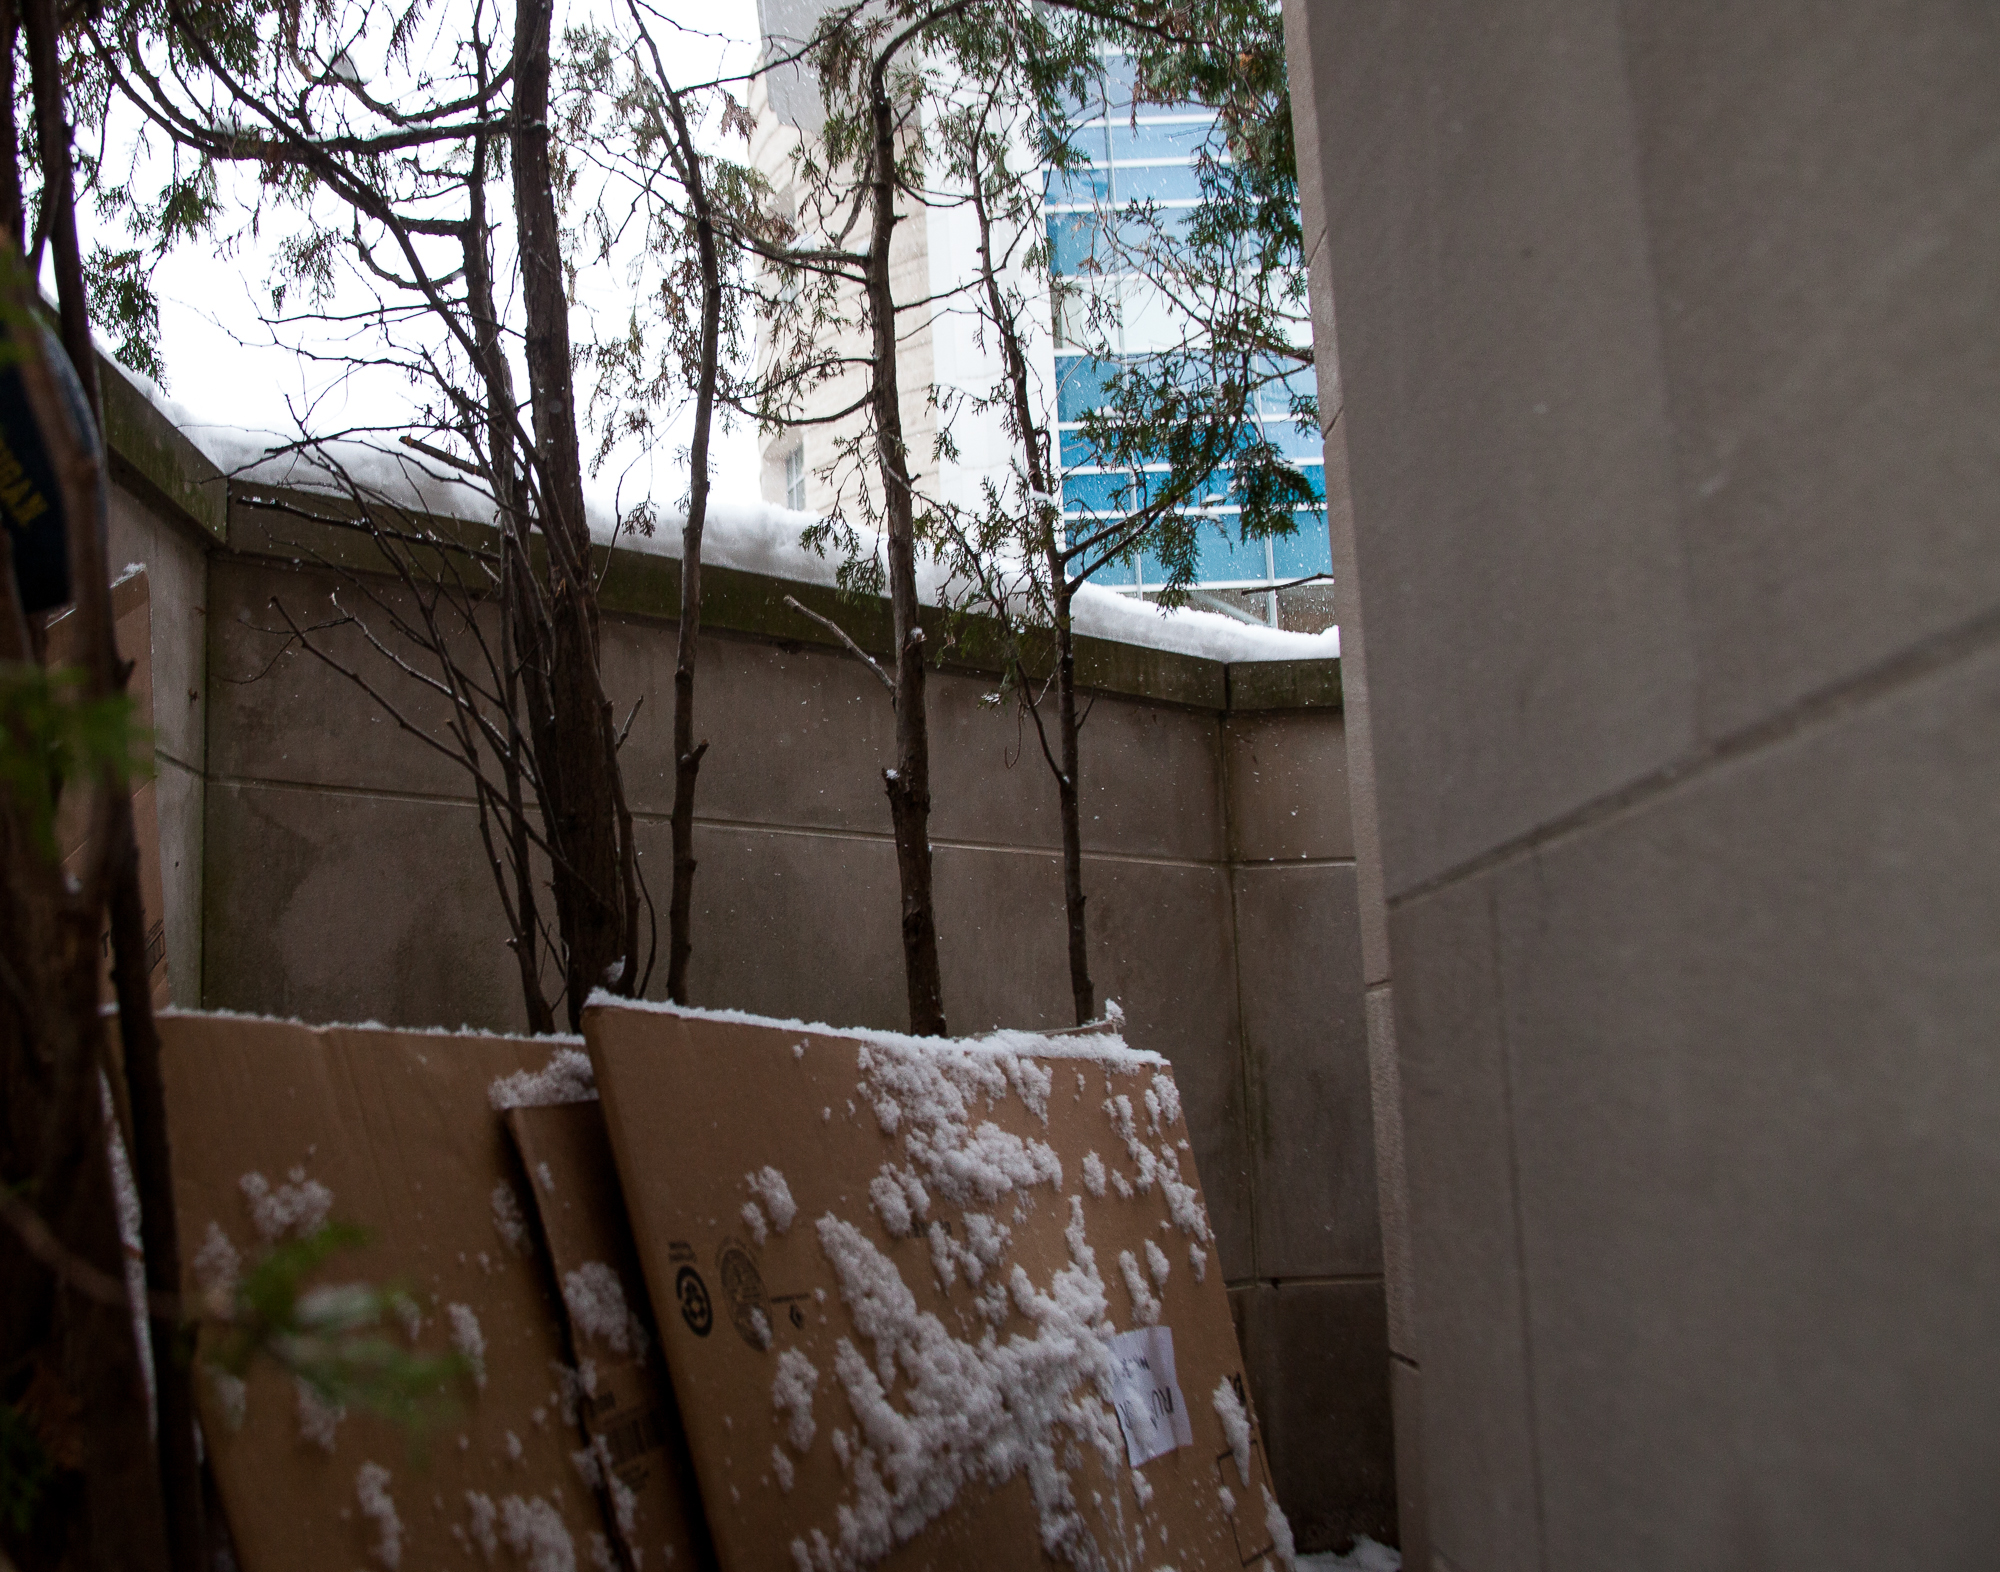 Found behind the Fountain Street Church sign are materials used to create shelter at night. The church allows homeless youth to sleep on church grounds, but the police kick them out of the space at 8 am.